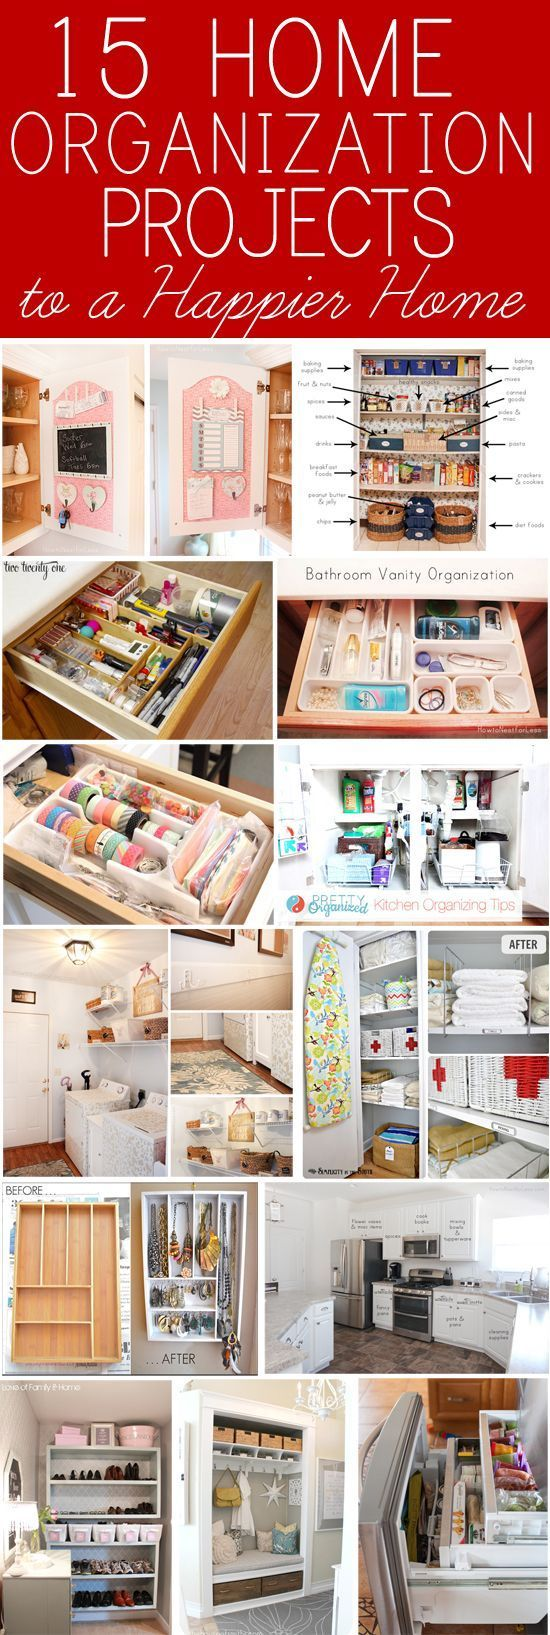 15 home organization projects. Oooh, I so need this!!